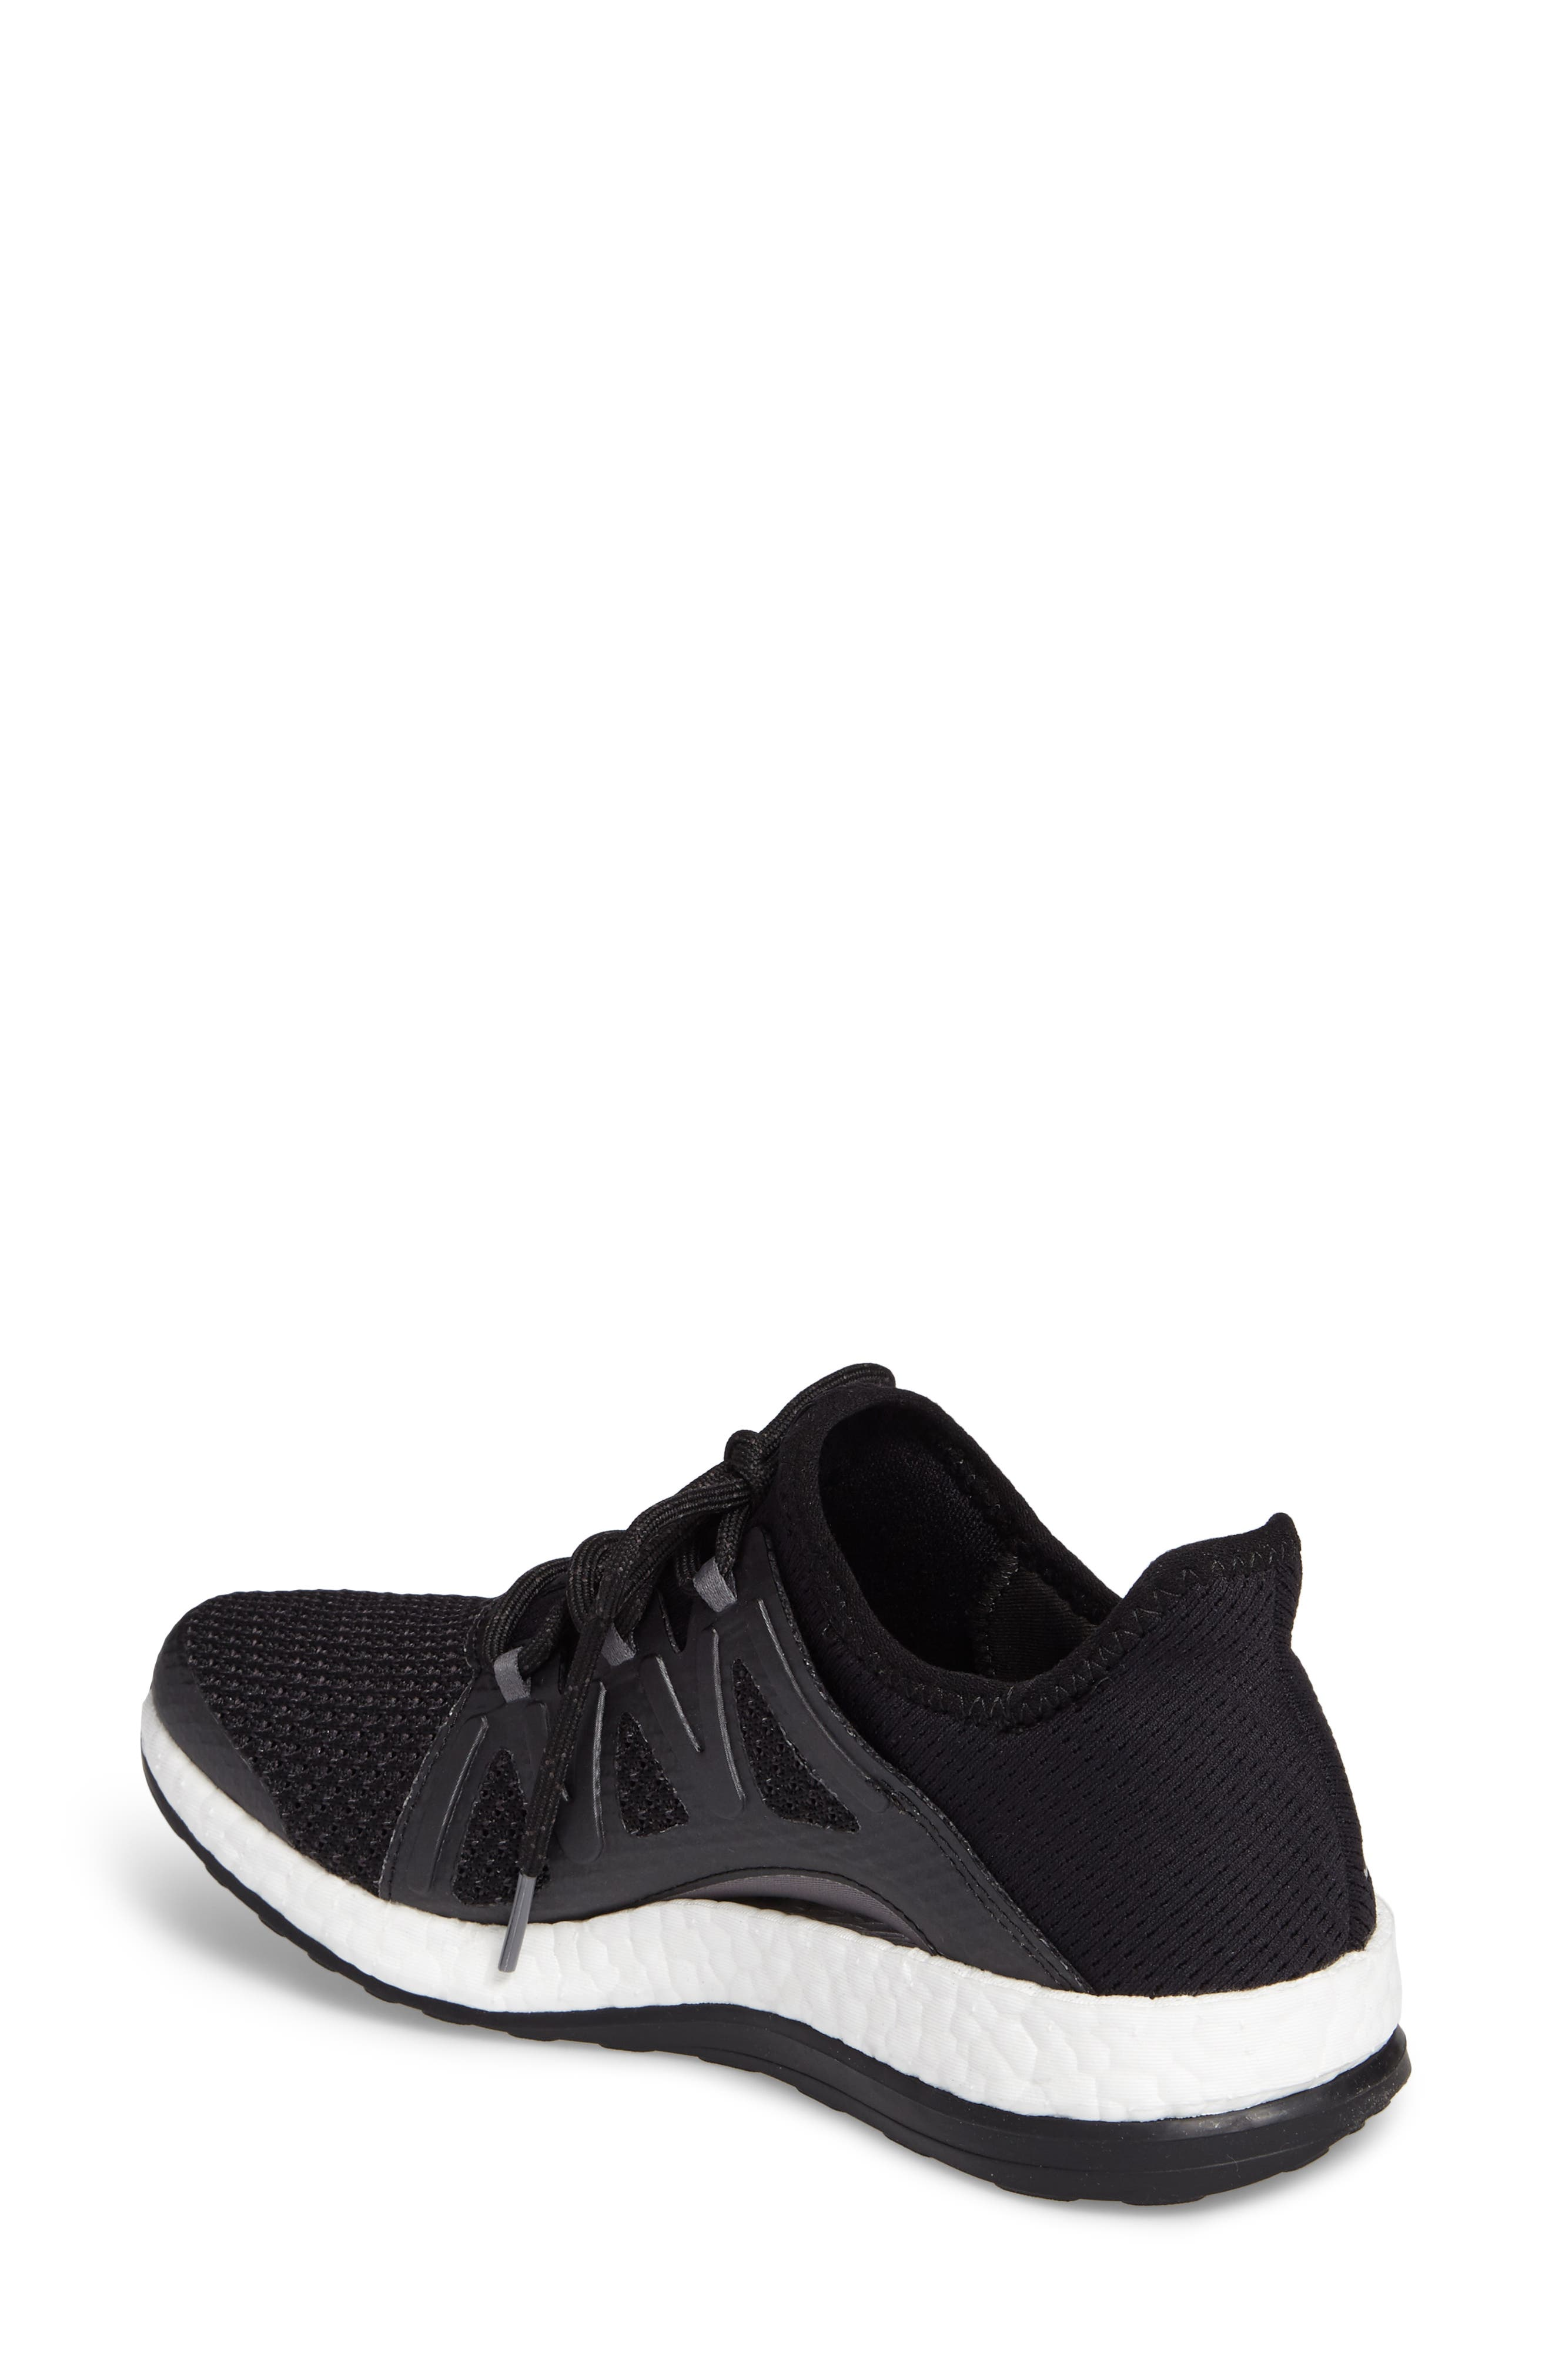 PureBOOST Xpose Running Shoe,                             Alternate thumbnail 5, color,